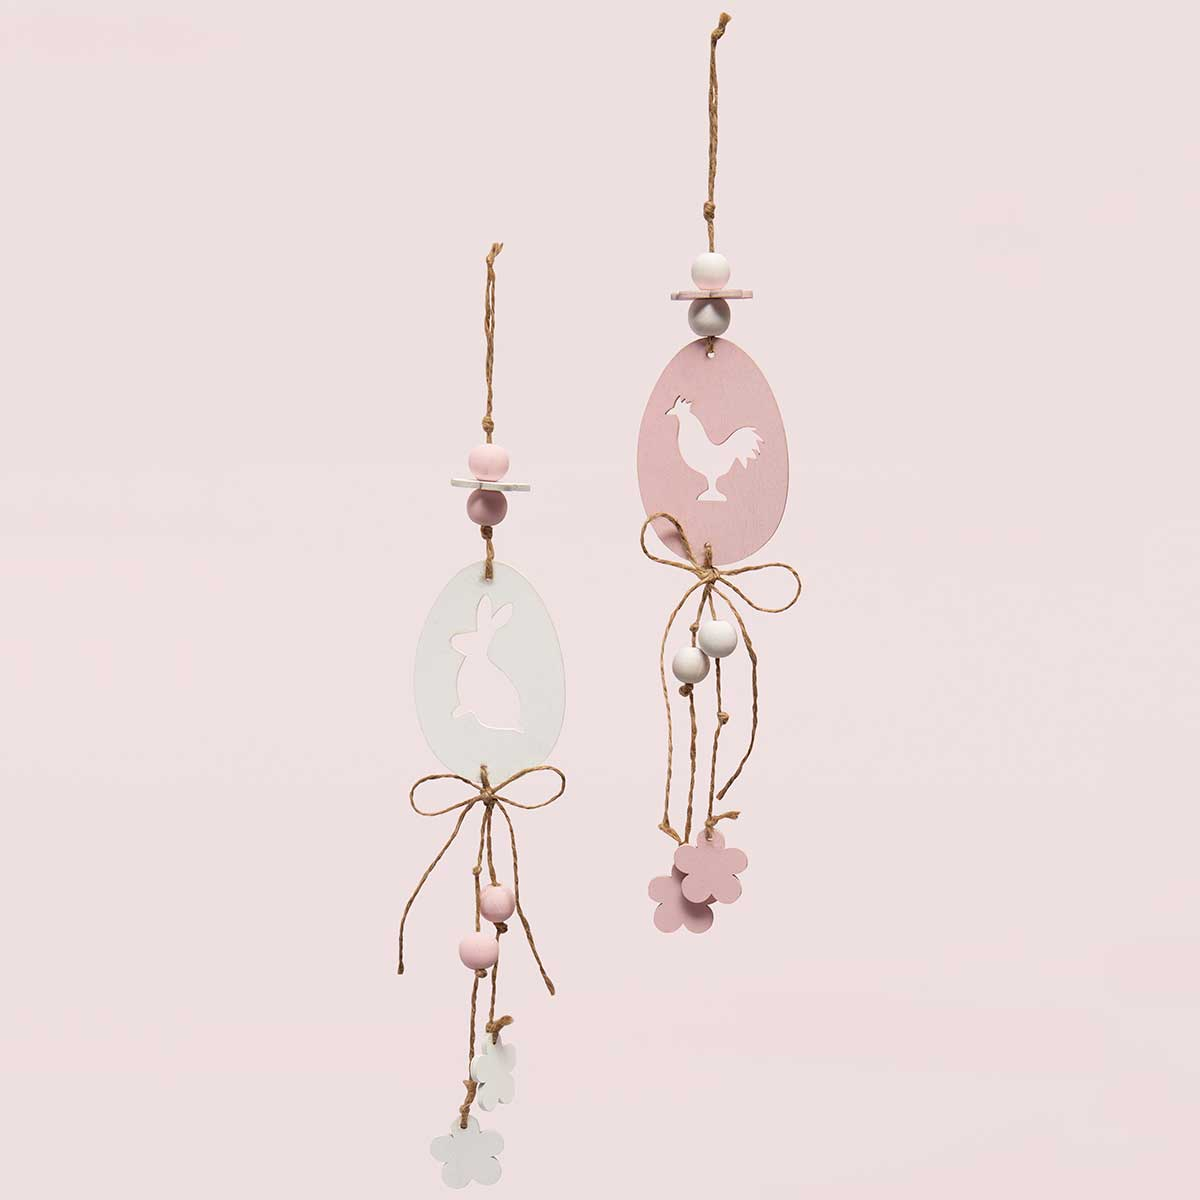 EGG WITH BUNNY/CHICK WOODEN HANG-UPS PINK/WHITE WITH TWINE AND